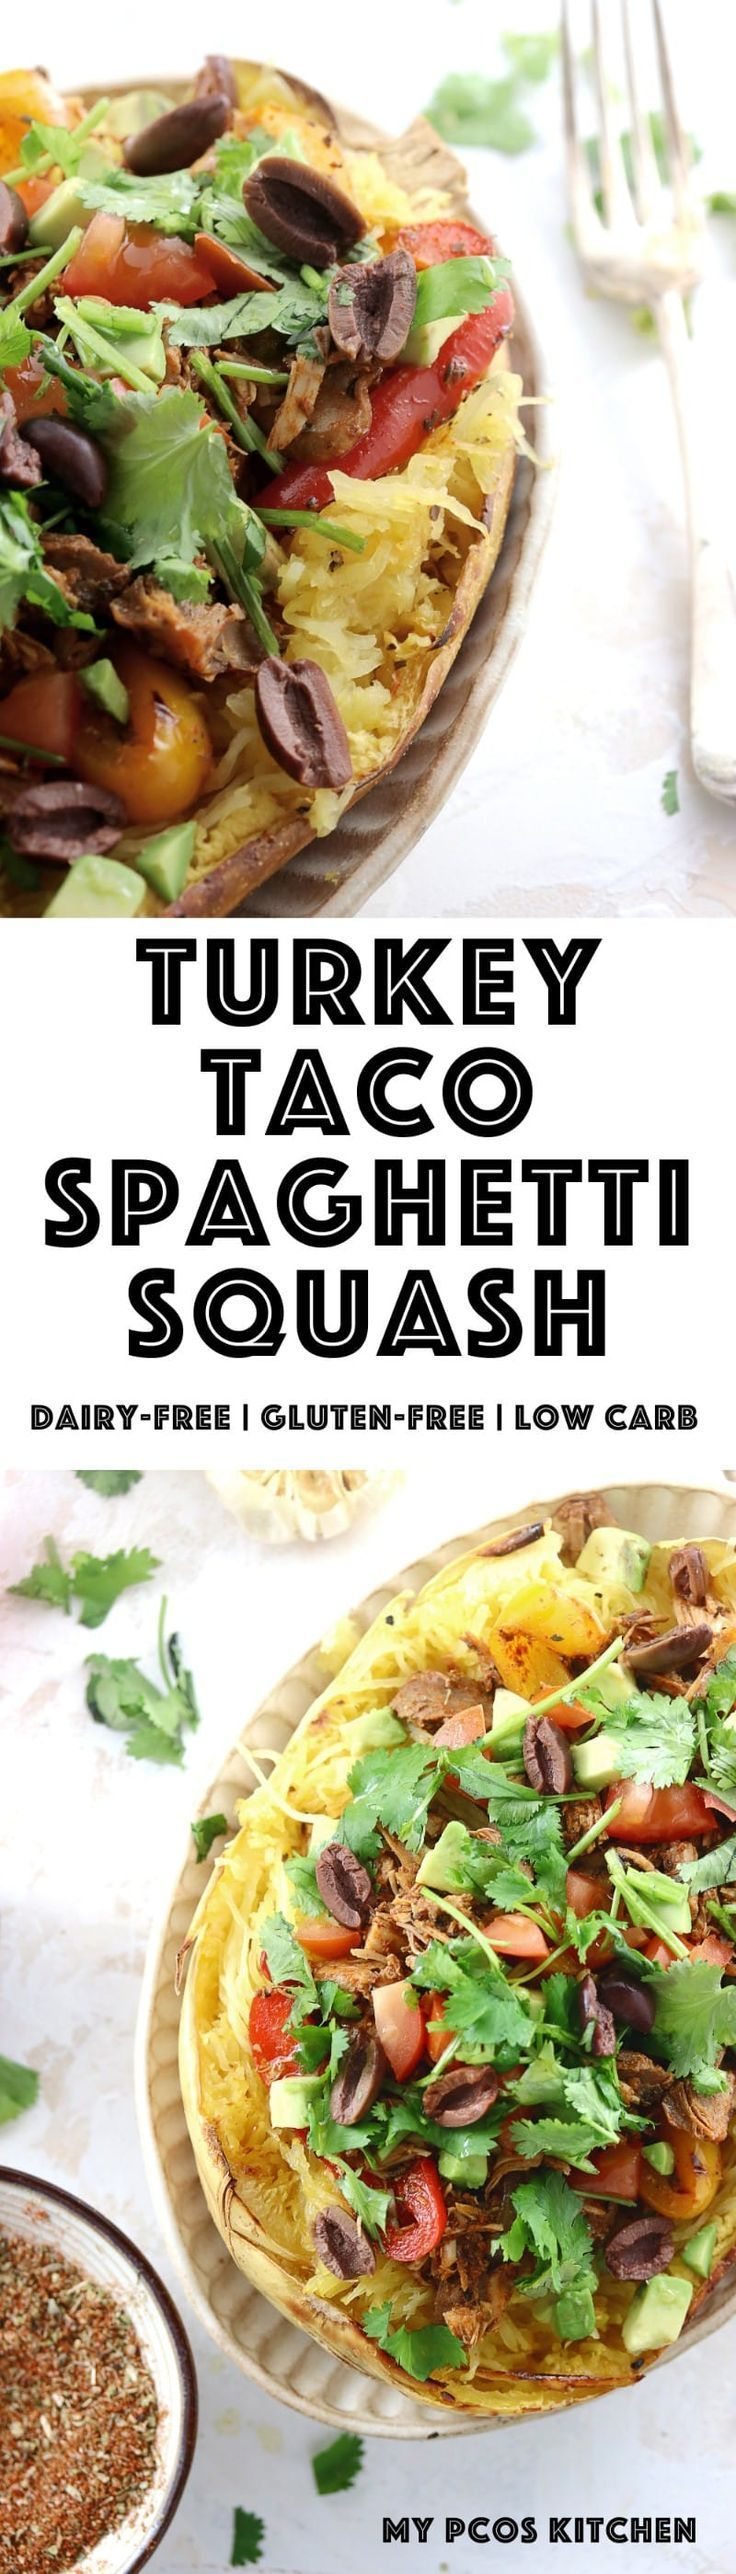 My PCOS Kitchen - Paleo Turkey Taco Spaghetti Squash - A great gluten-free and dairy-free dinner filled with leftover turkey from Thanksgiving cooked in taco spice. #glutenfree #paleo #lowcarb #taco via @mypcoskitchen